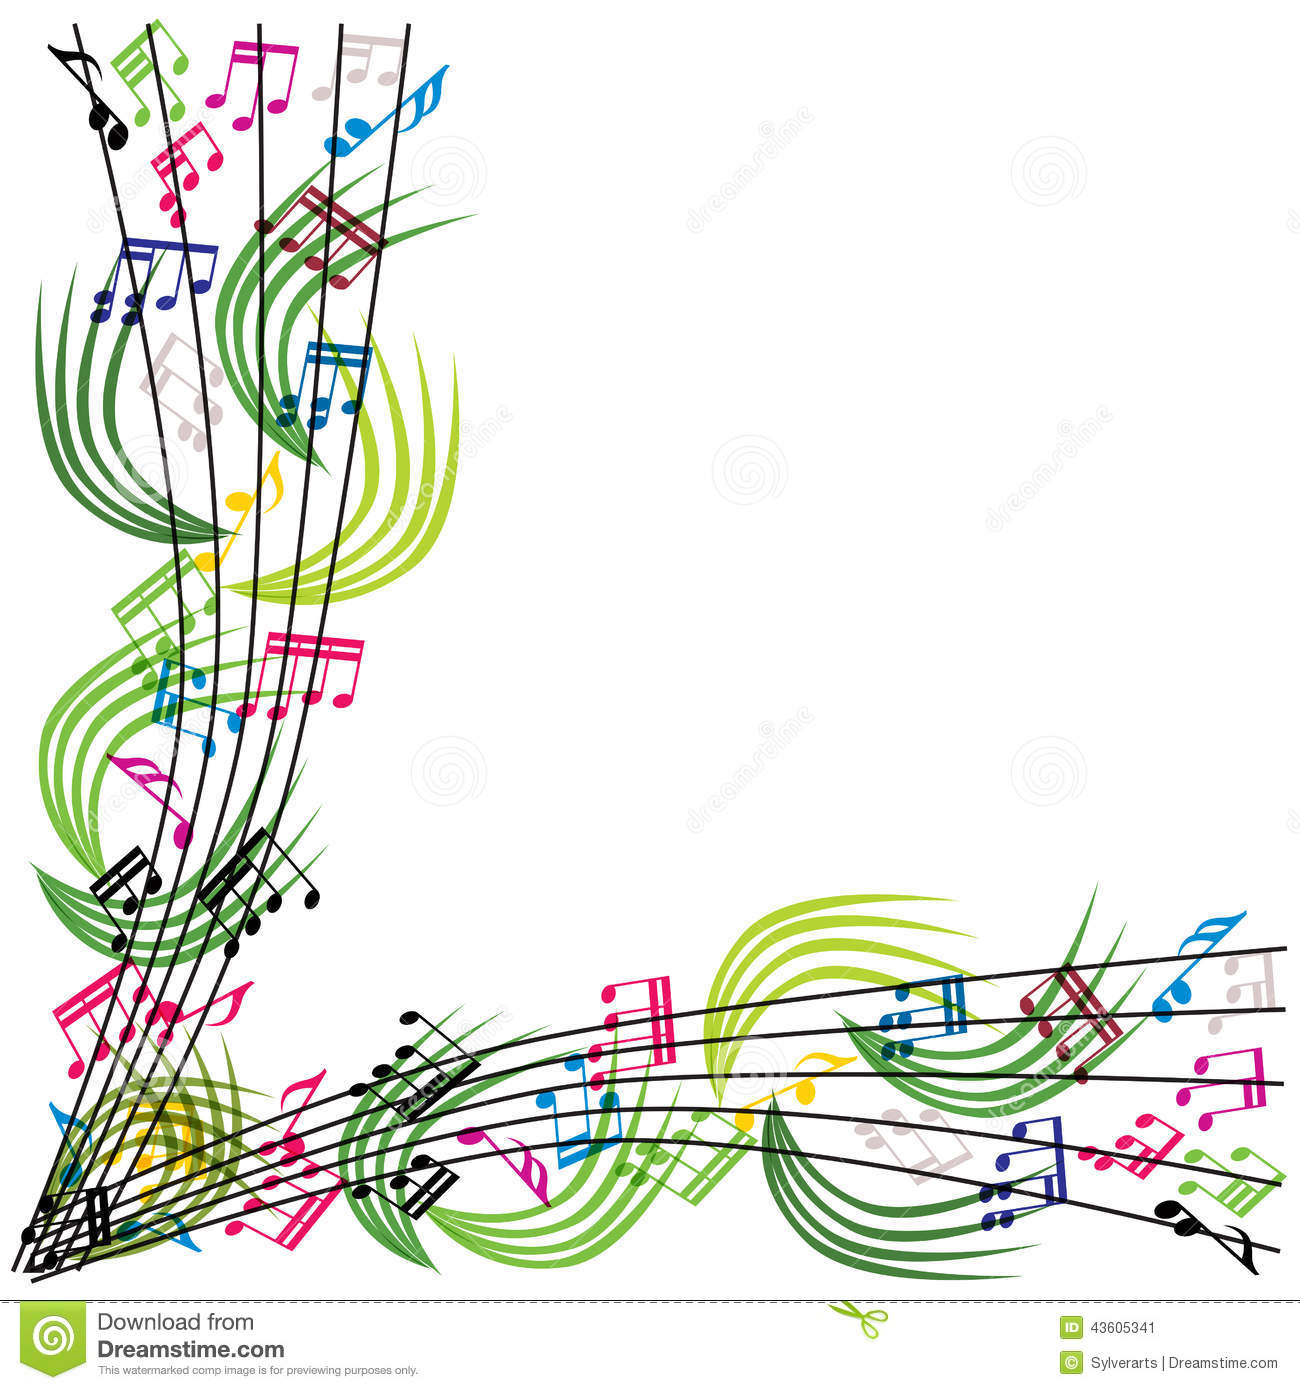 illustration composition on the changing music Photo illustration by the daily beast  in the second half of bar 25 is this of a  tonic and changes at the bar line to bar 26 to a subdominant function in  a  music composition major in college, he was in his early 20s at the time.